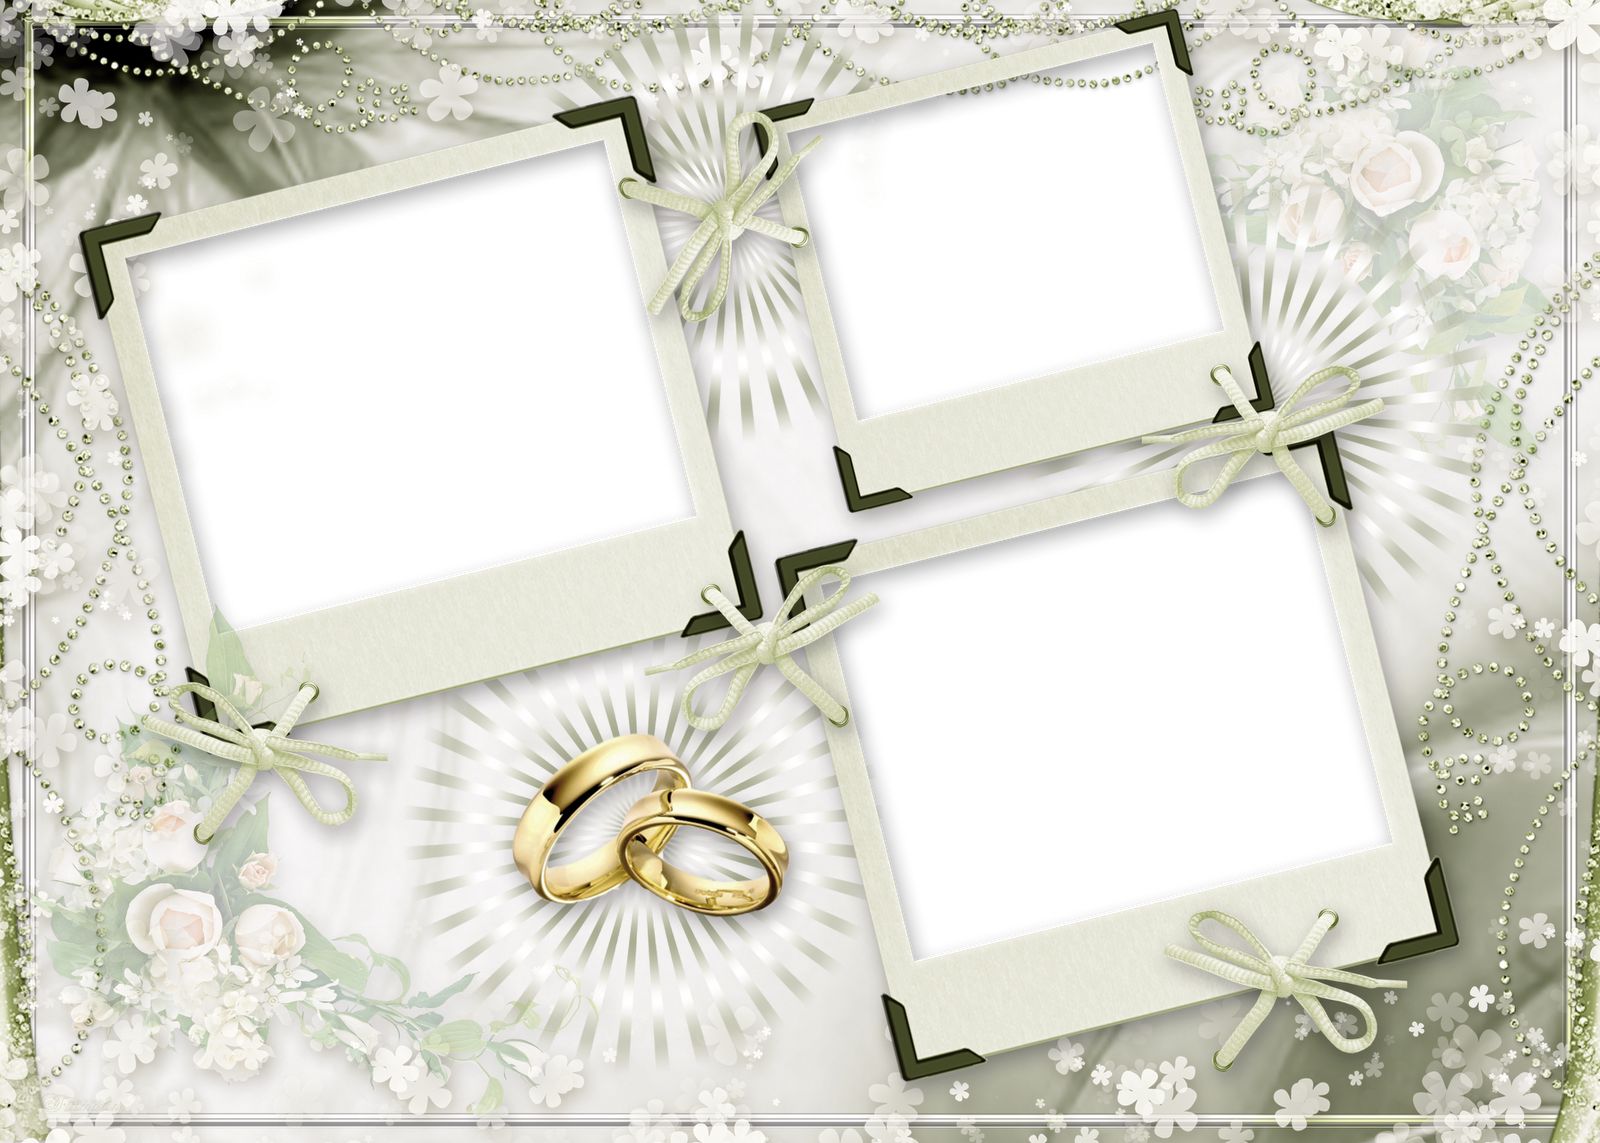 Wedding Frame Transparent PNG Pictures - Free Icons and ...